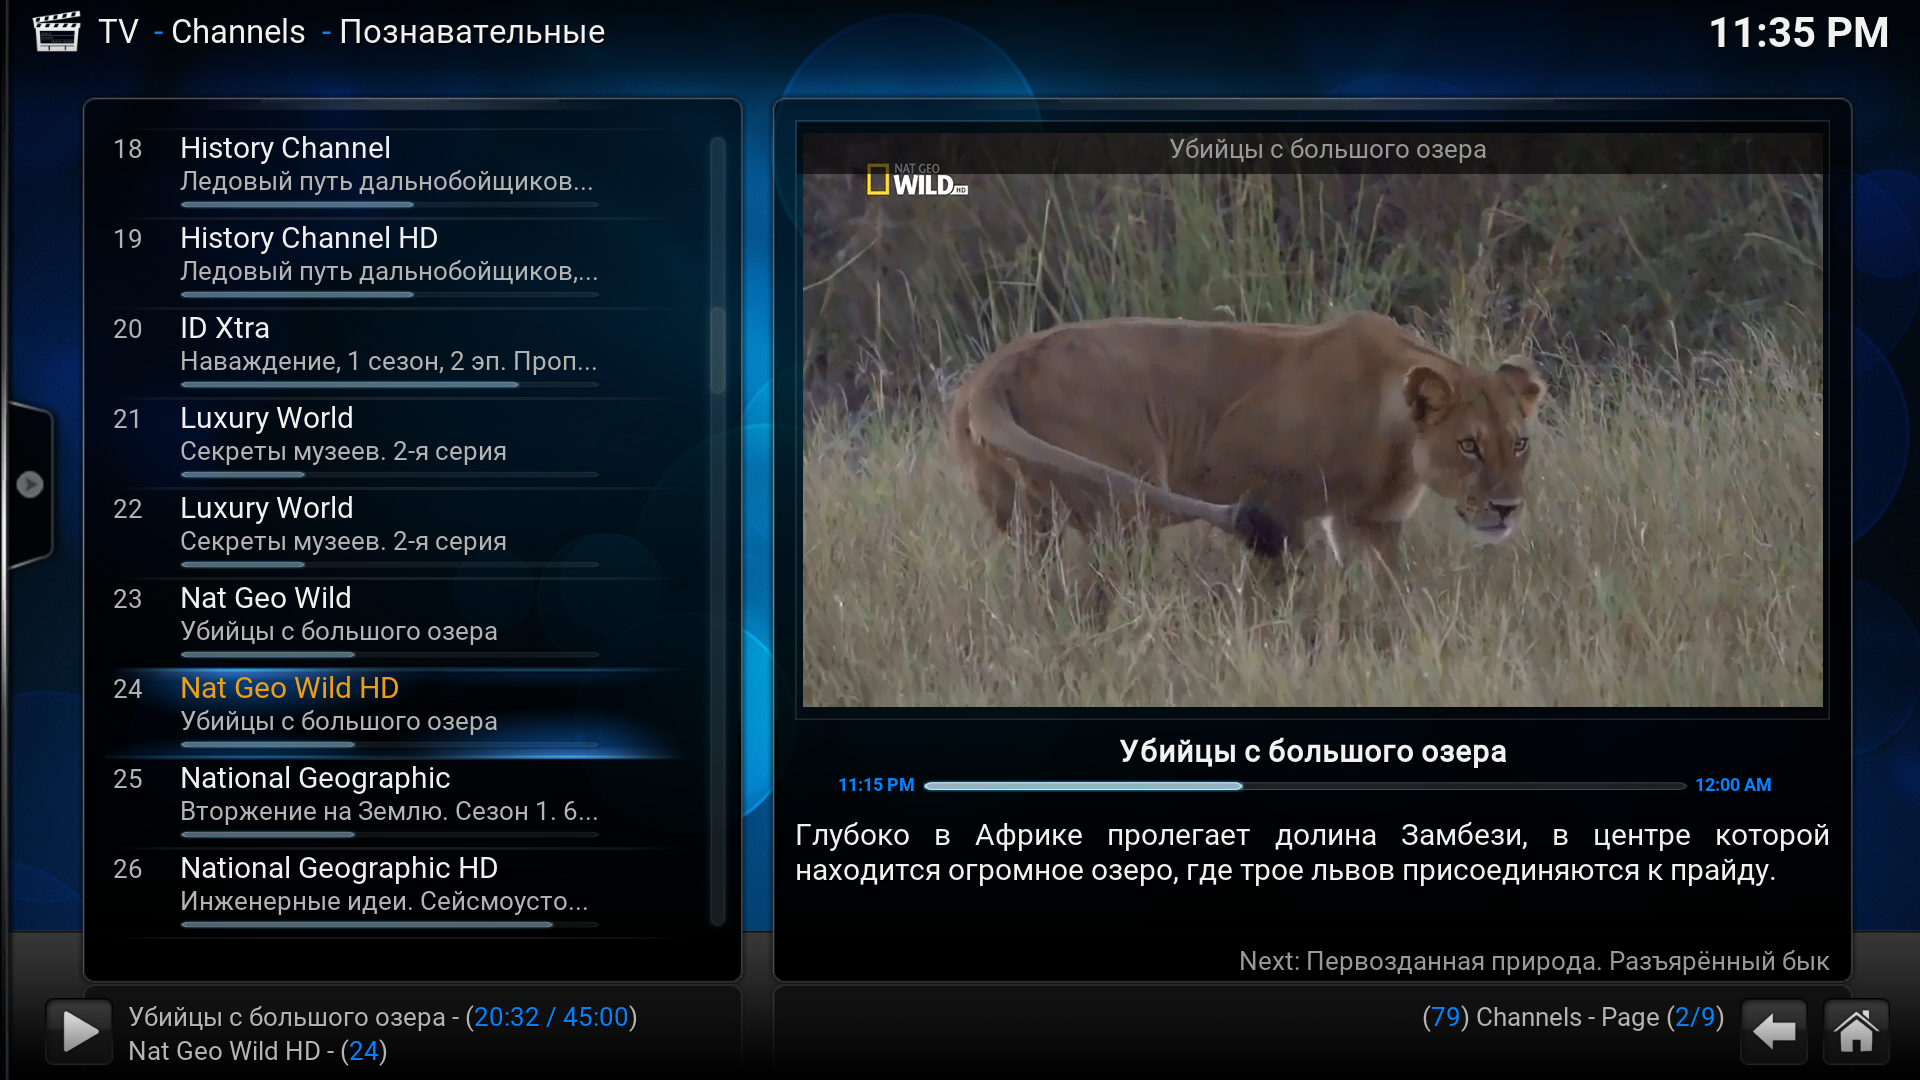 kodi live tv channels list screenshot